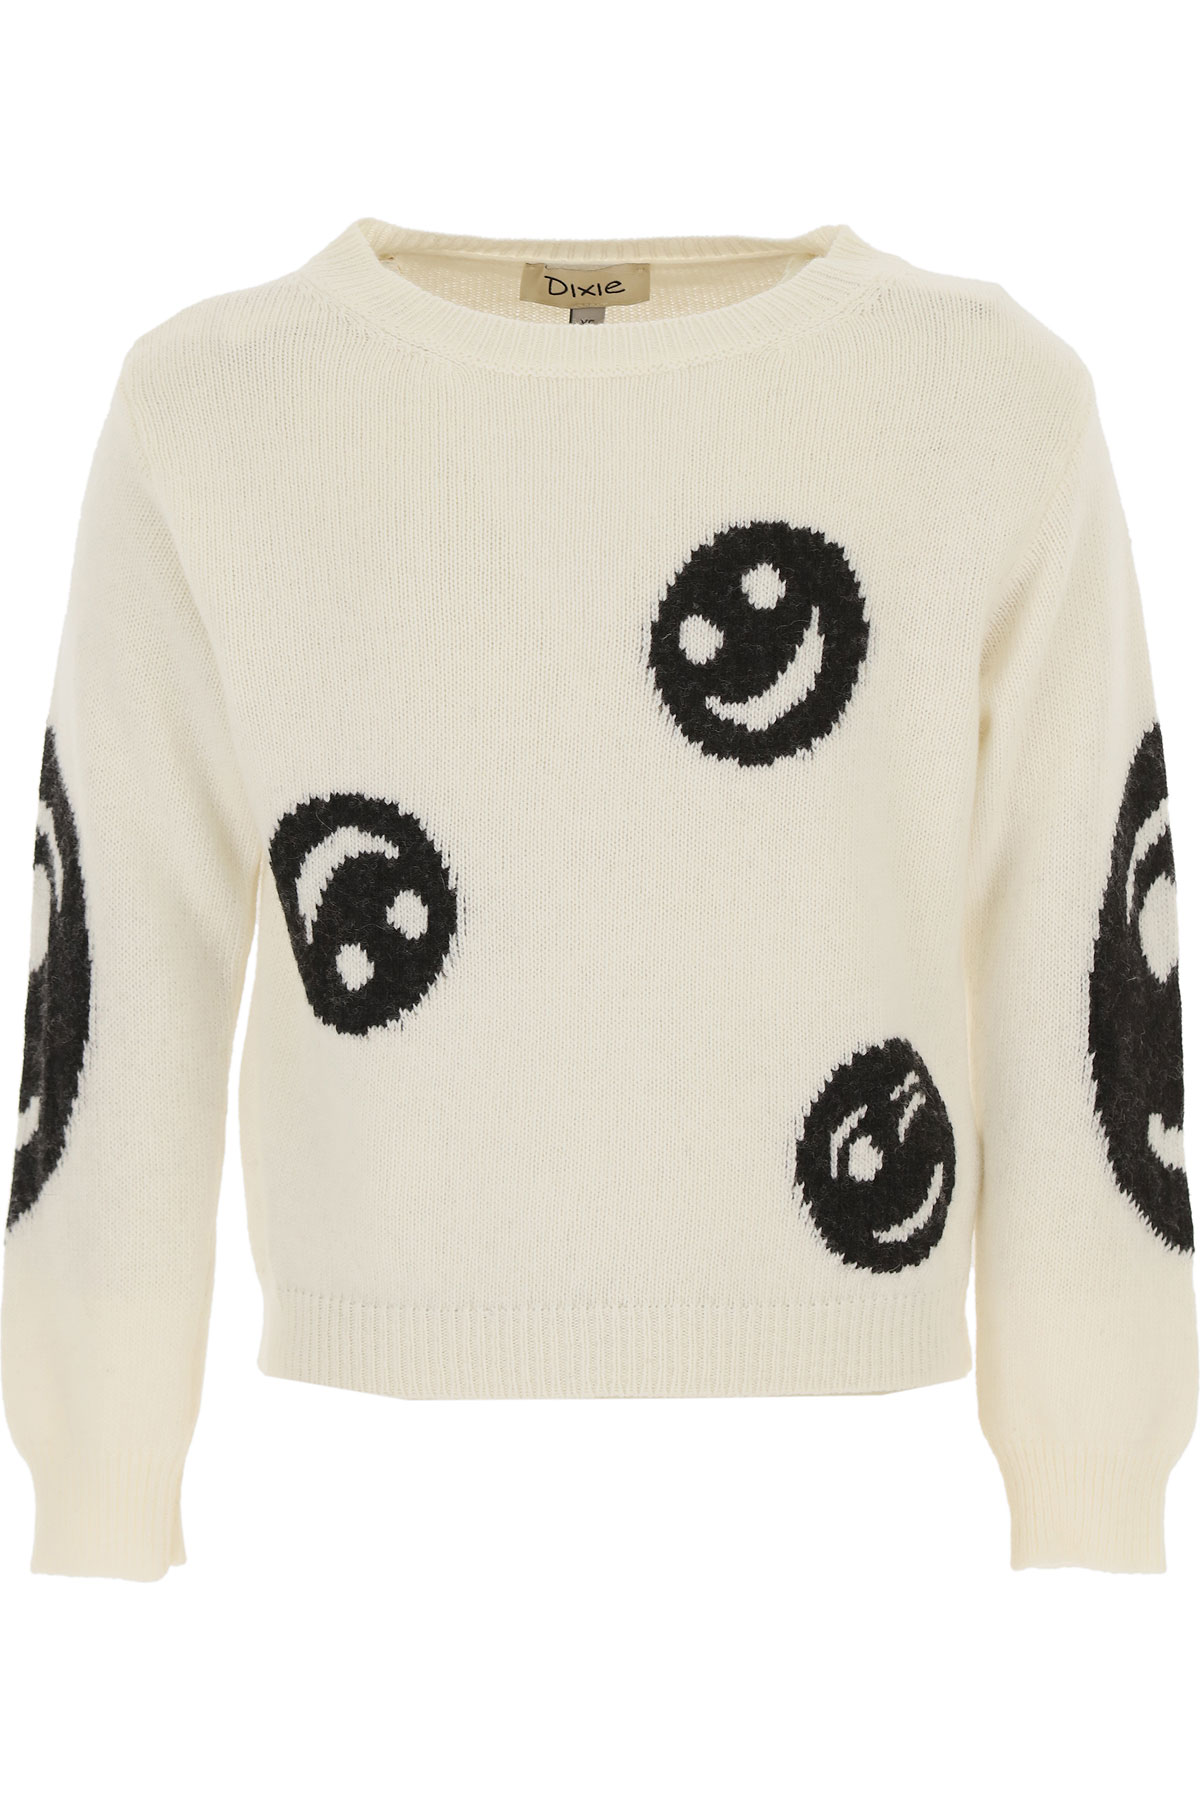 Dixie Kids Sweaters for Girls On Sale, White, polyamide, 2019, L M S XS